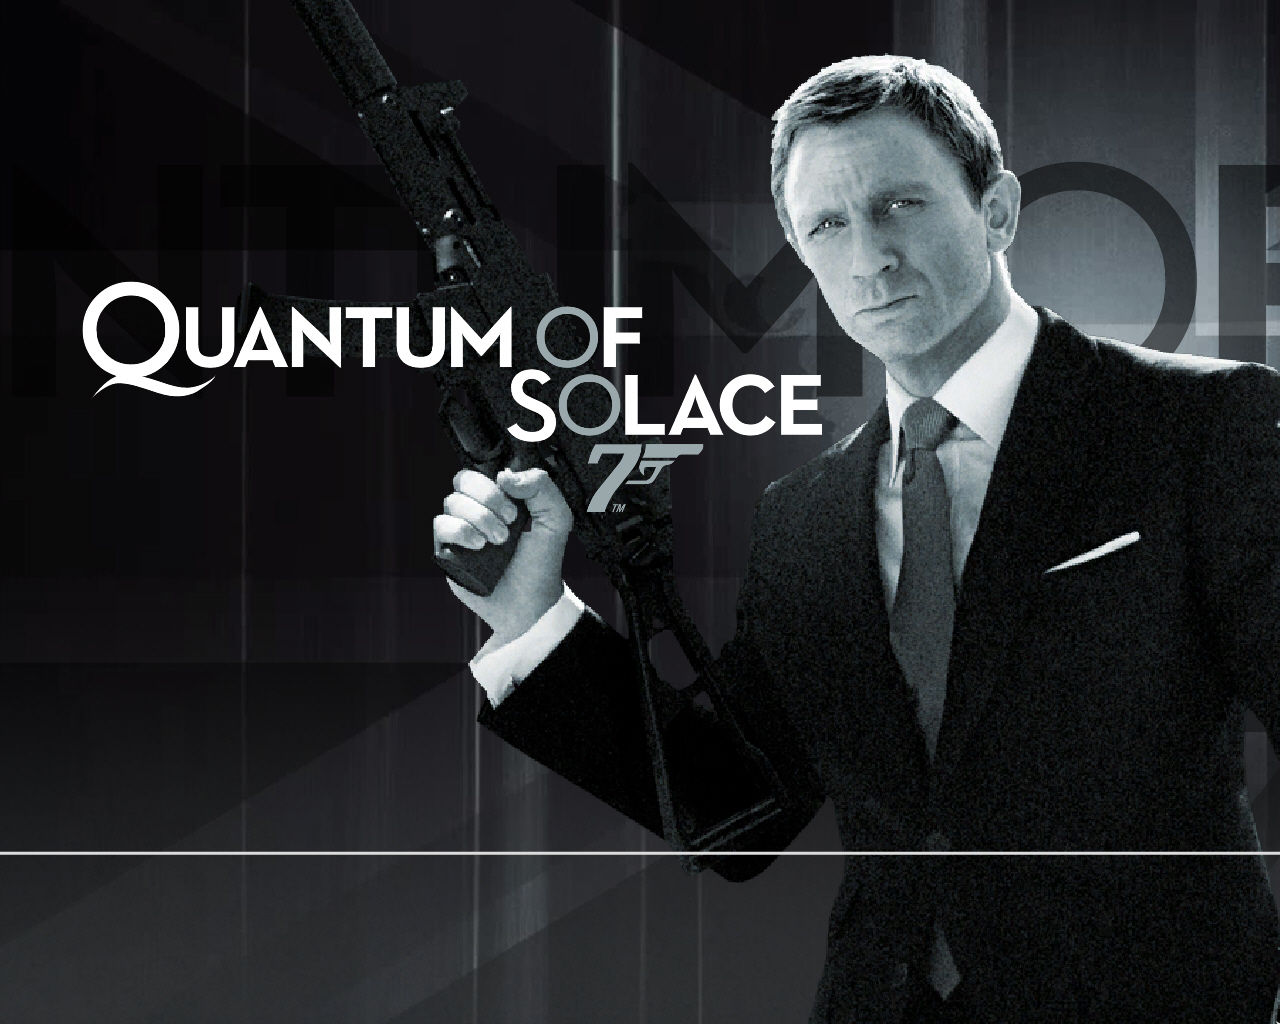 007: Quantum of Solace Windows Title Screen.